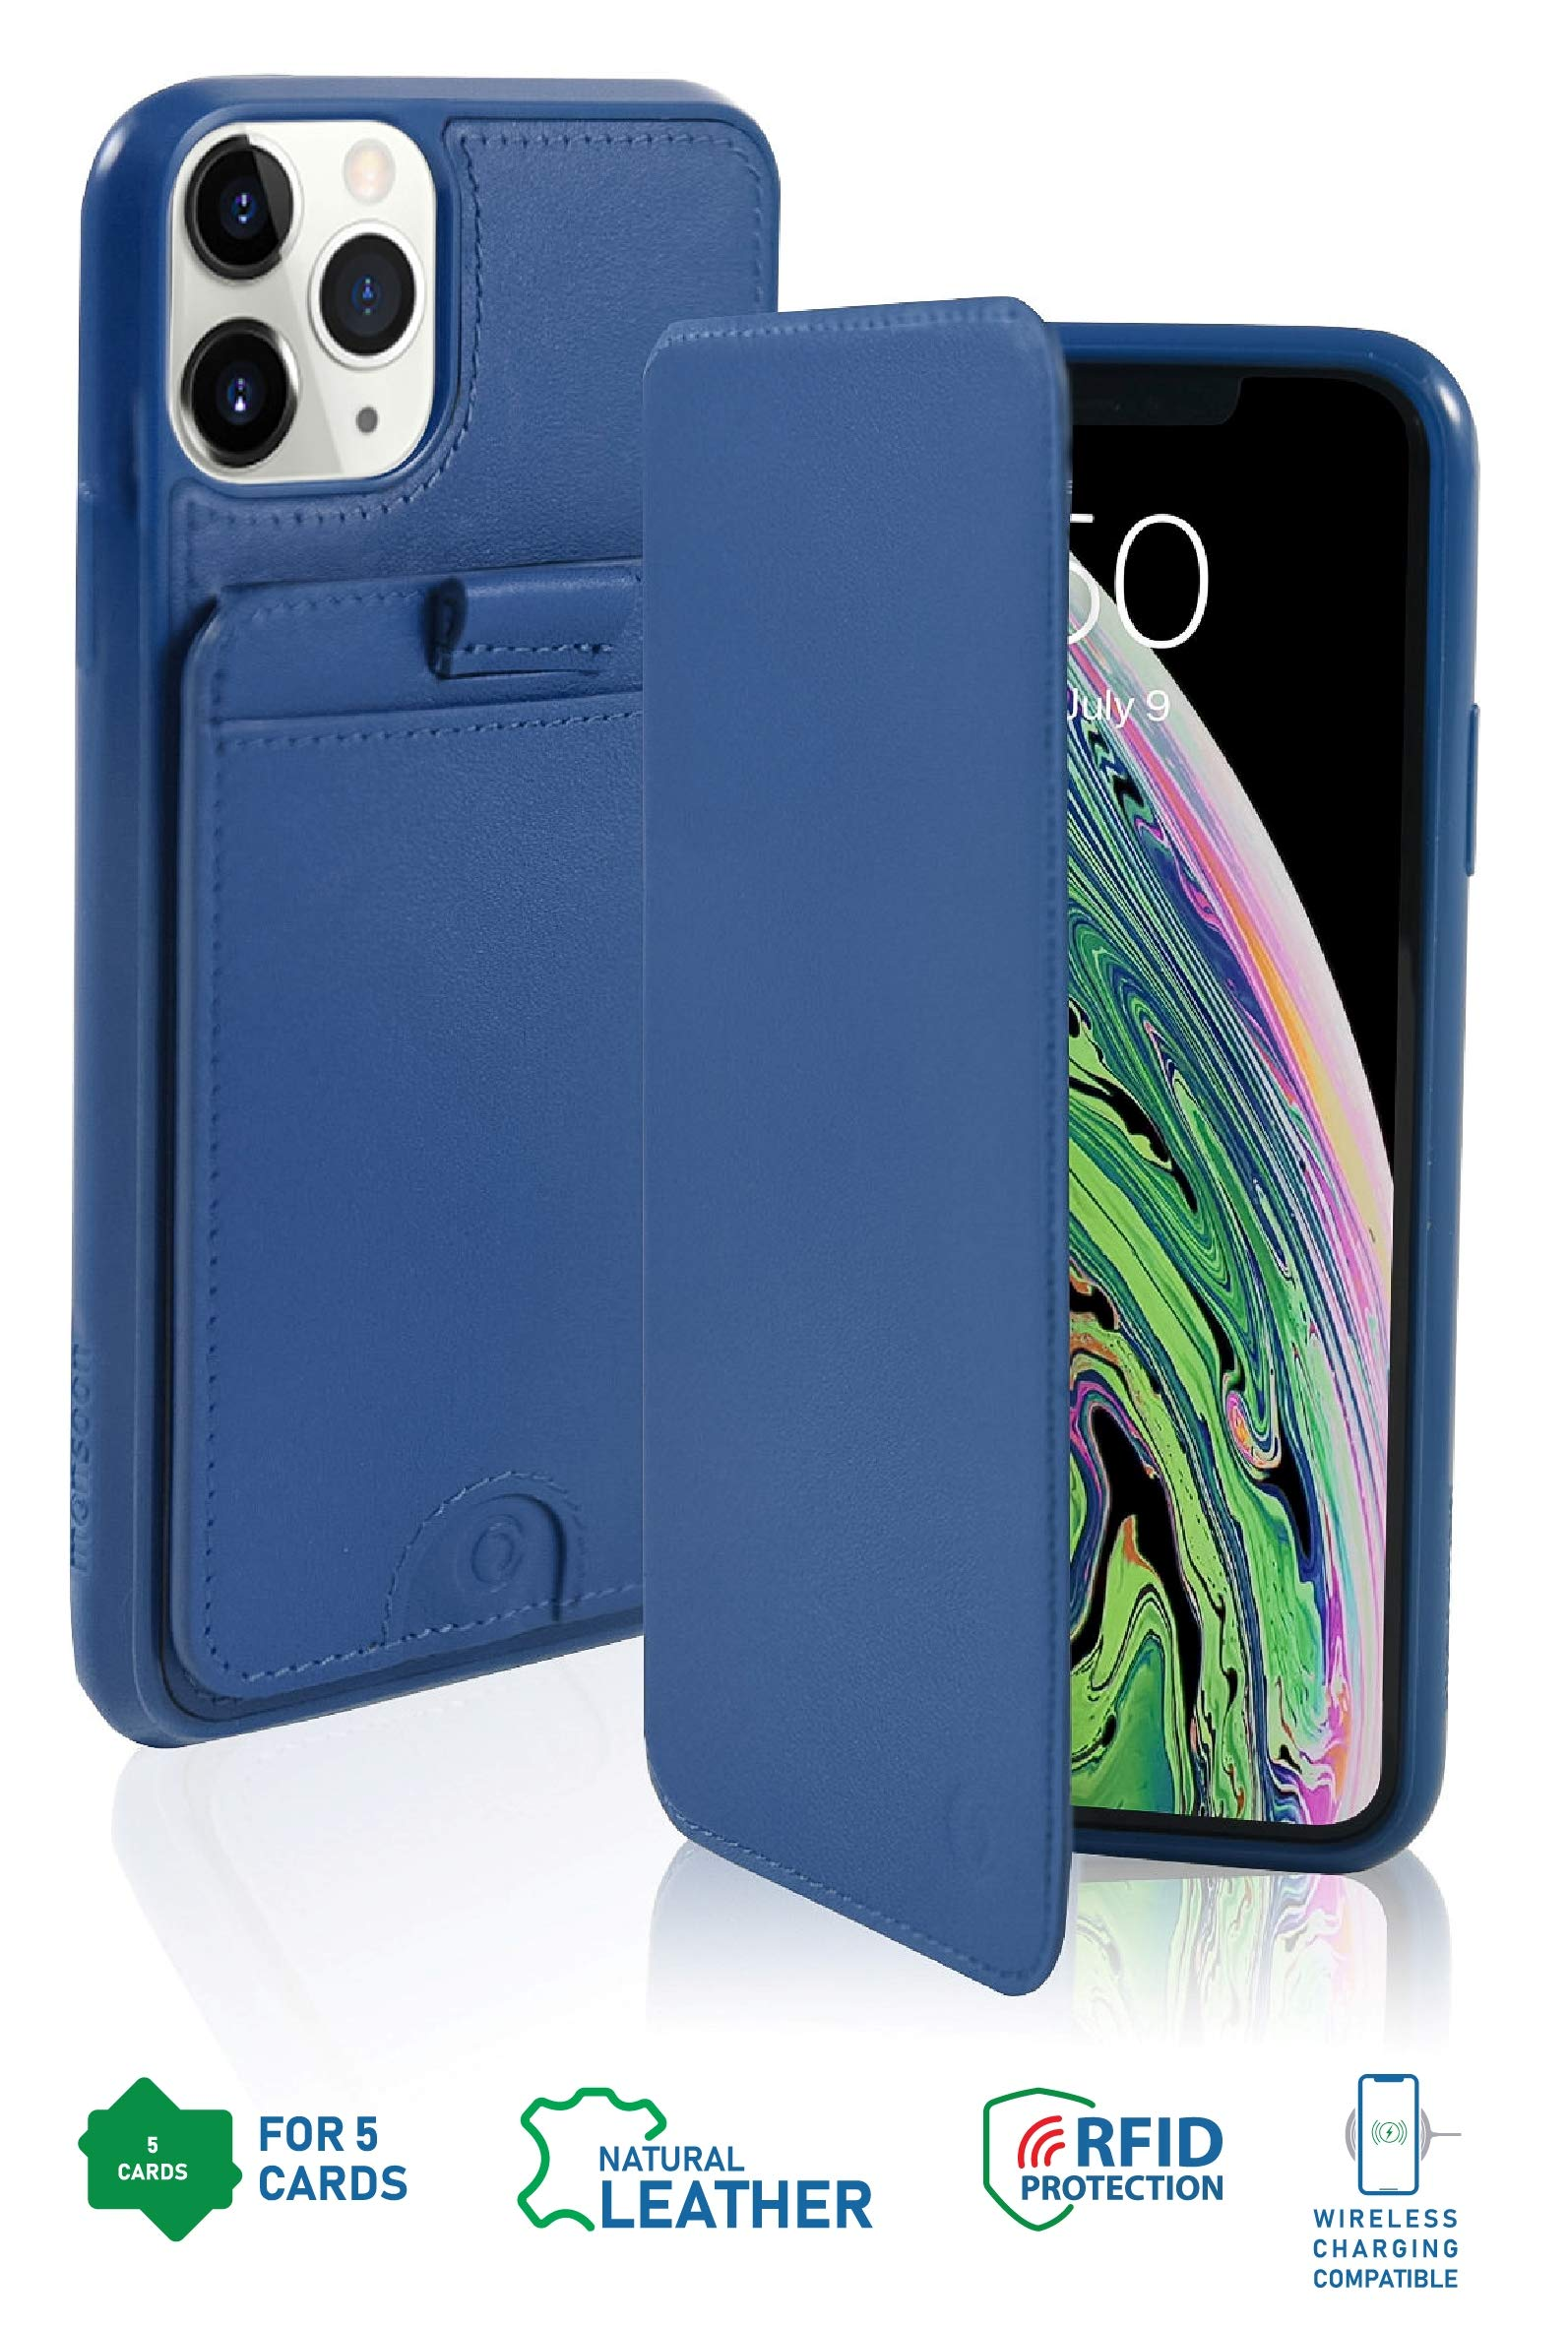 monsoon [Raindrop] Genuine Leather Wallet Folio Case with Removable Slim Wallet for iPhone 11 Pro MAX - Holds 5 Cards | RFID | Stand | Wireless Charging OR Magnetic Car Mount Compatible - Blue